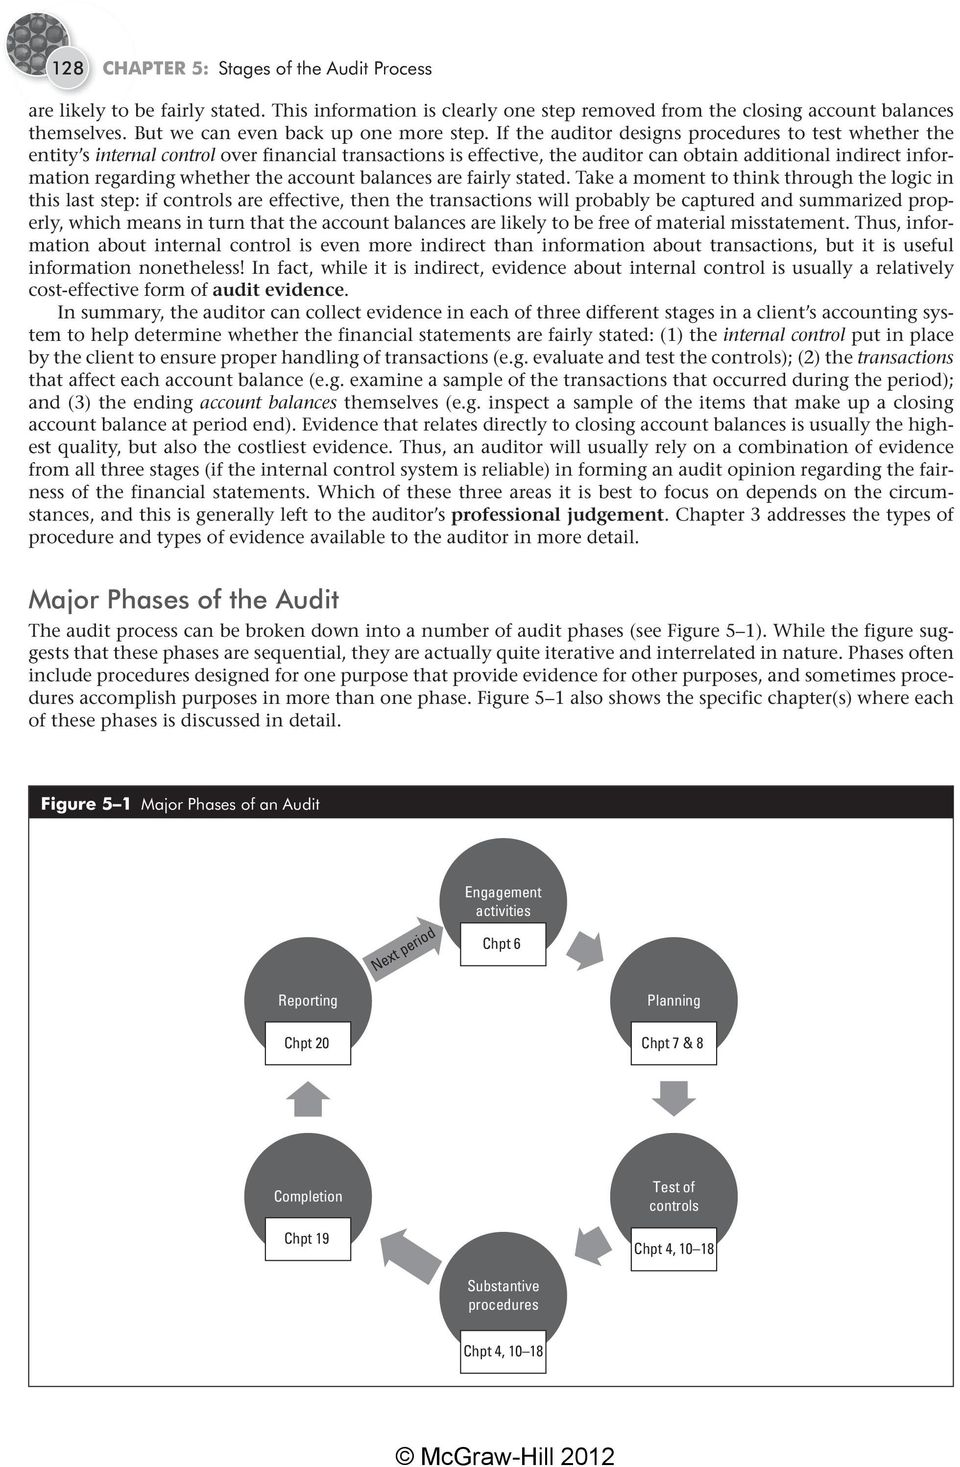 If the auditor designs procedures to test whether the entity s internal control over financial transactions is effective, the auditor can obtain additional indirect information regarding whether the